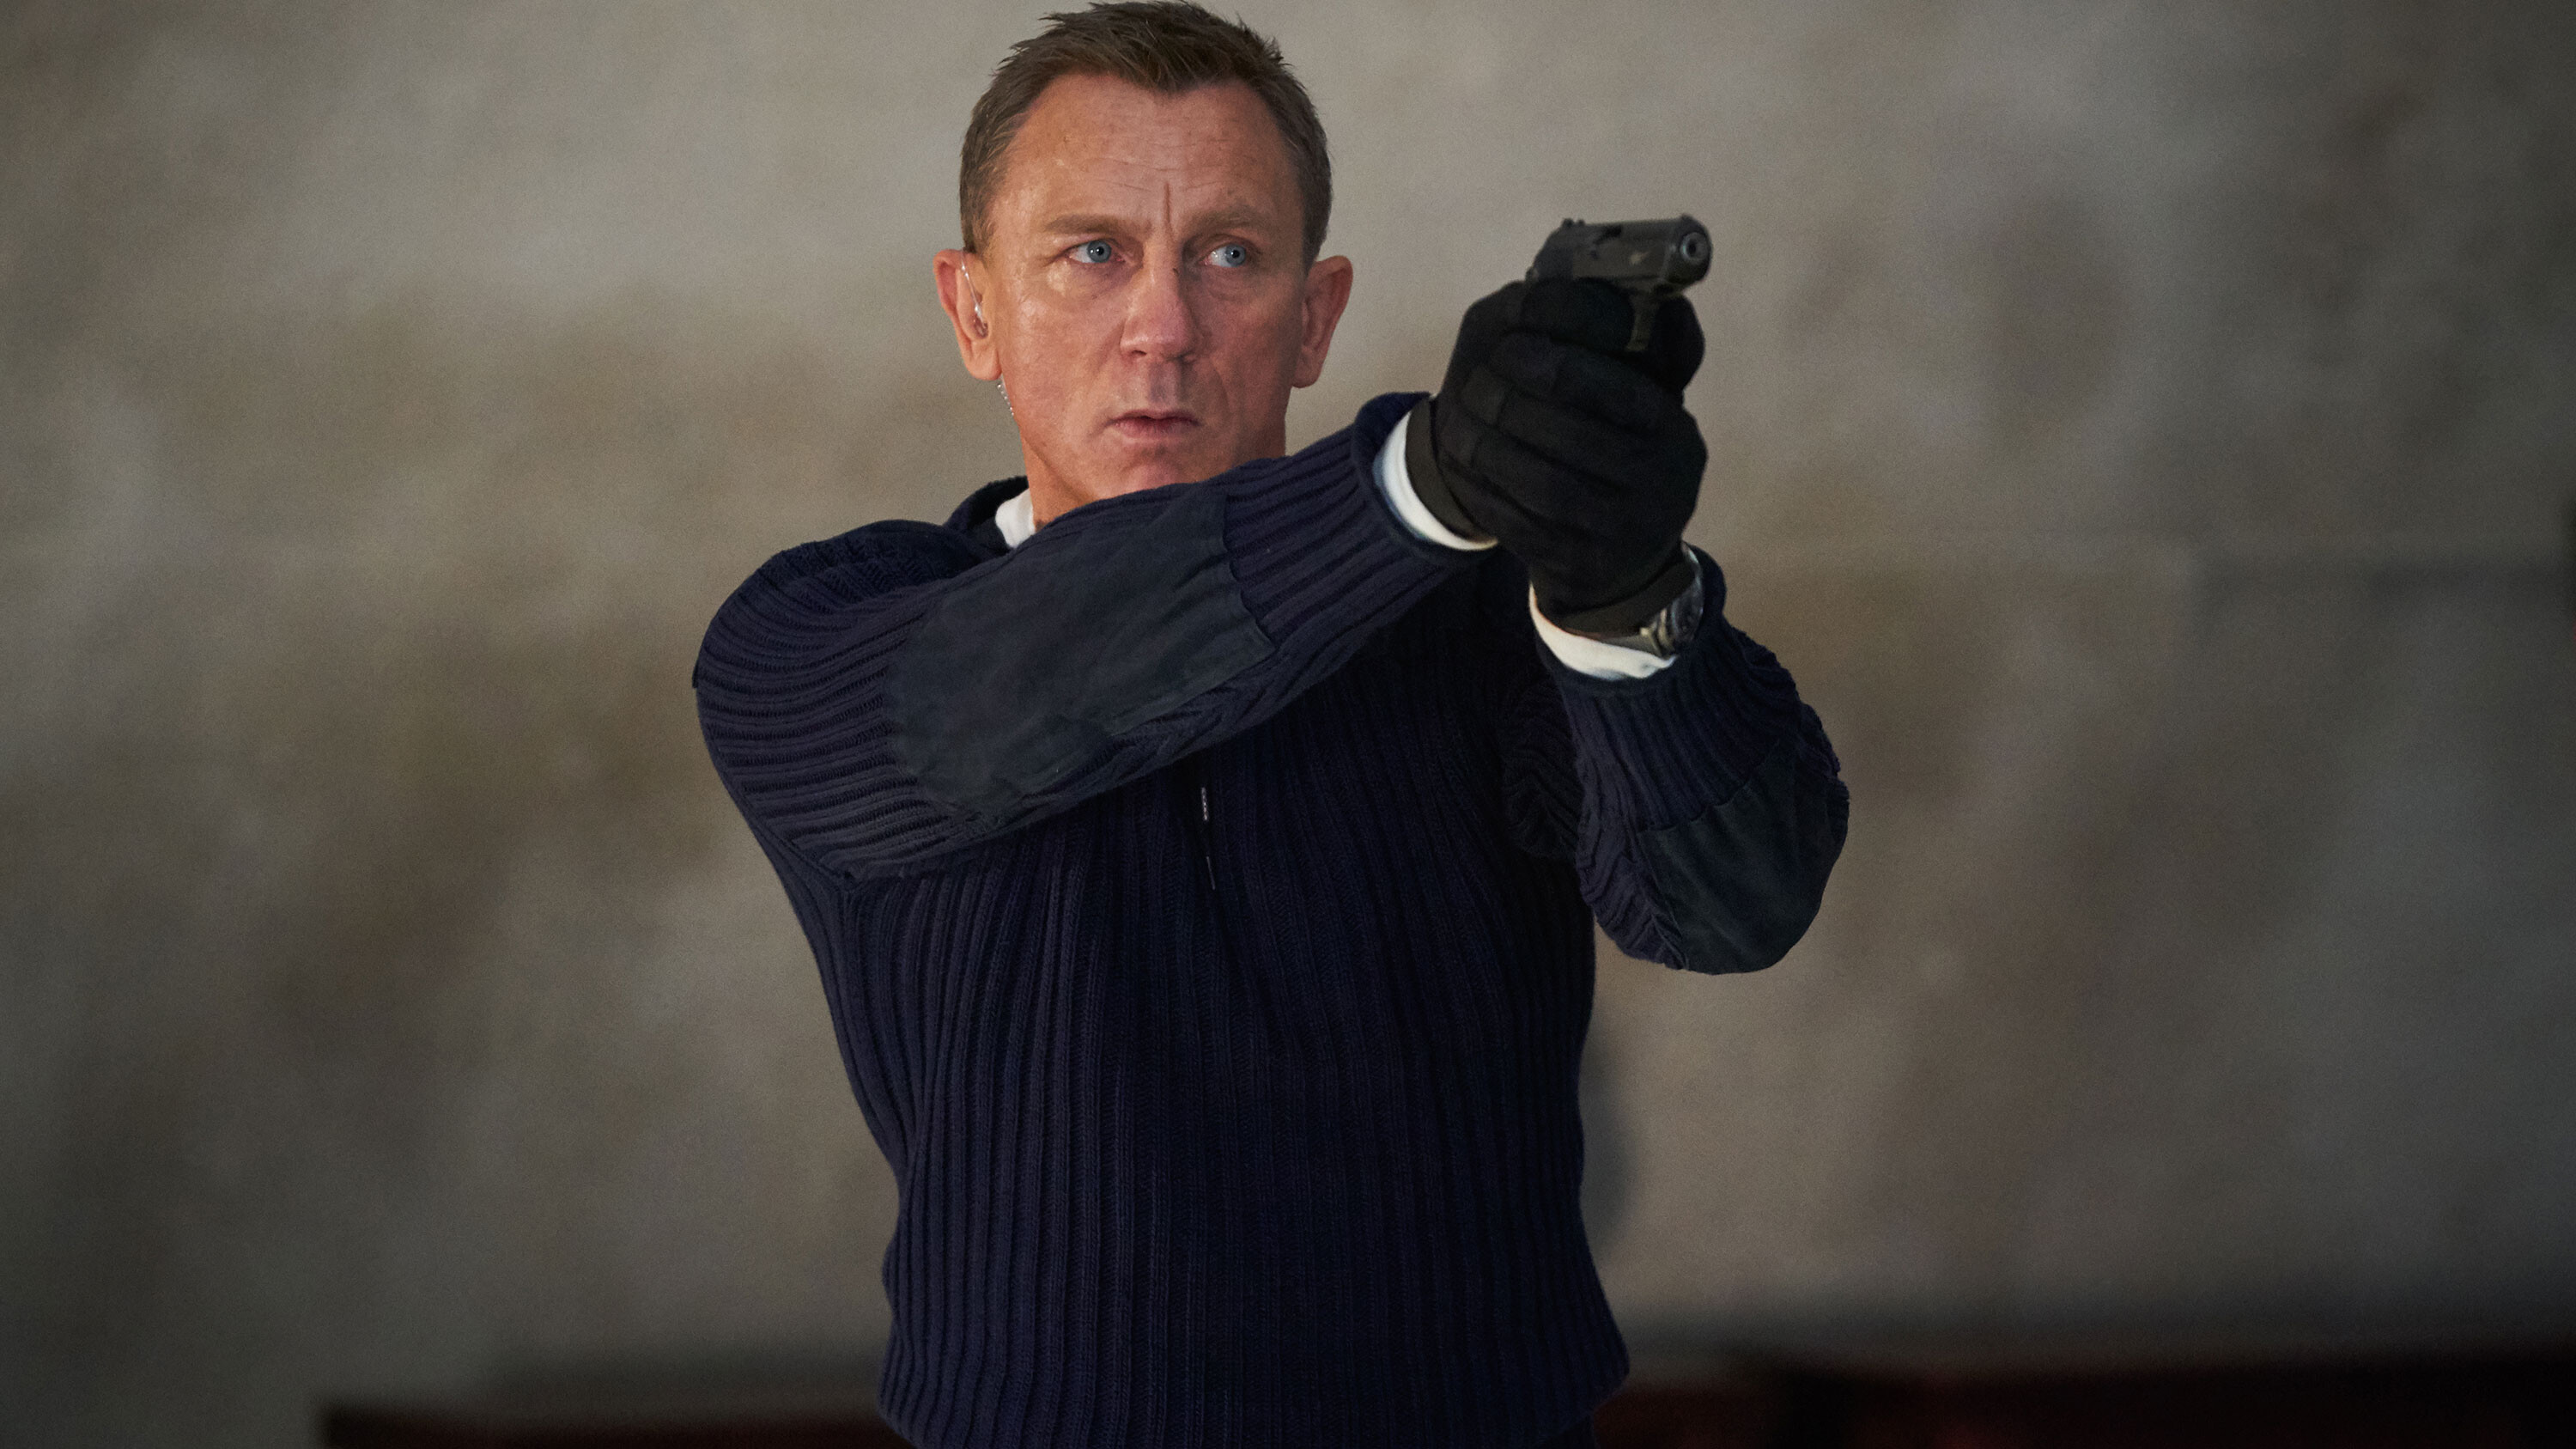 'No Time to Die' marks the end of Daniel Craig's service with a slightly bloated Bond film